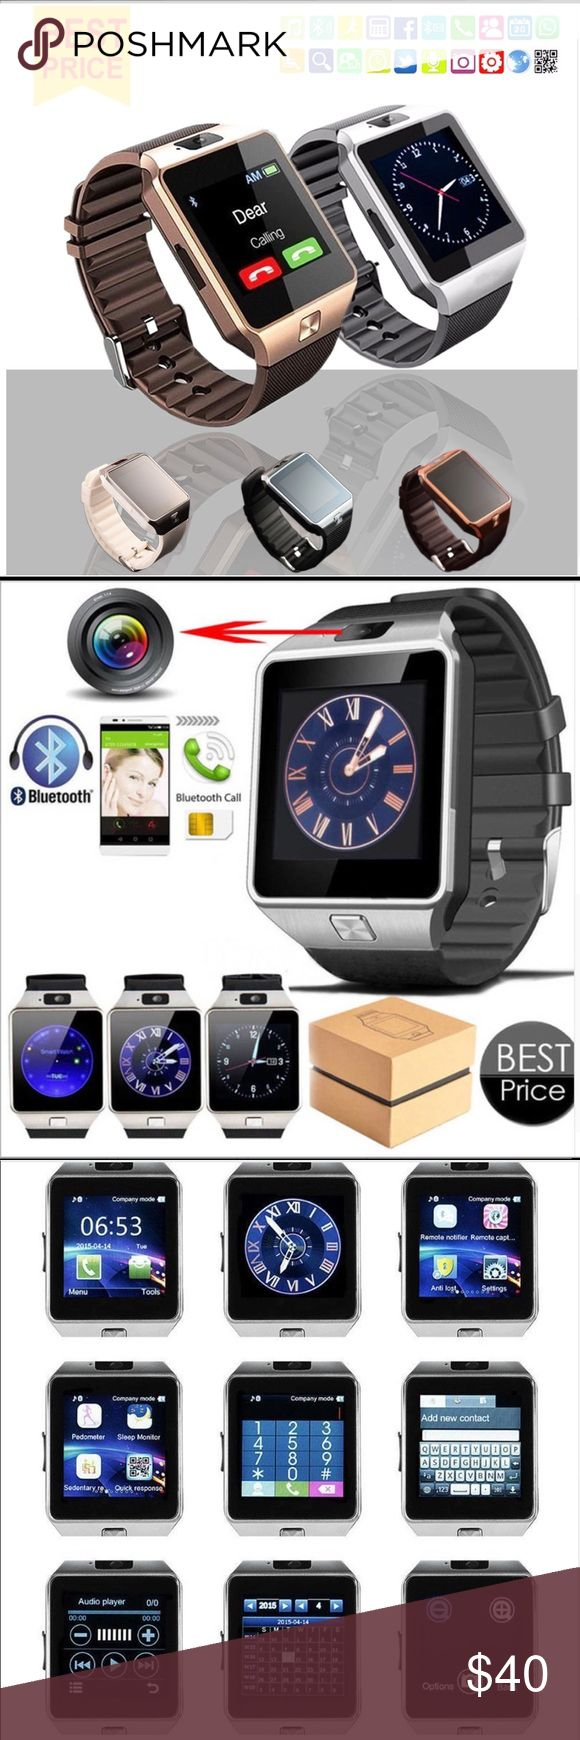 New SmartWatch Men Women Bluetooth camera iOS Andr Color= White= Silver Faceplate + White Writst Band  What is included in the package? Watch * 1    Screen Protector * 1  USB Cable * 1    User Manual * 1    Retail Box * 1   Function:Answer Call,Calendar,Dial Call,Alarm Clock,Speed Measurement,Passometer,Message Reminder,Sleep Tracker,Call Reminder APP Download Available:Yes Language:French,Italian,Russian,Norwegian,Spanish,Polish,Portuguese,Turkish,English,German Band Material:Silica Gel…